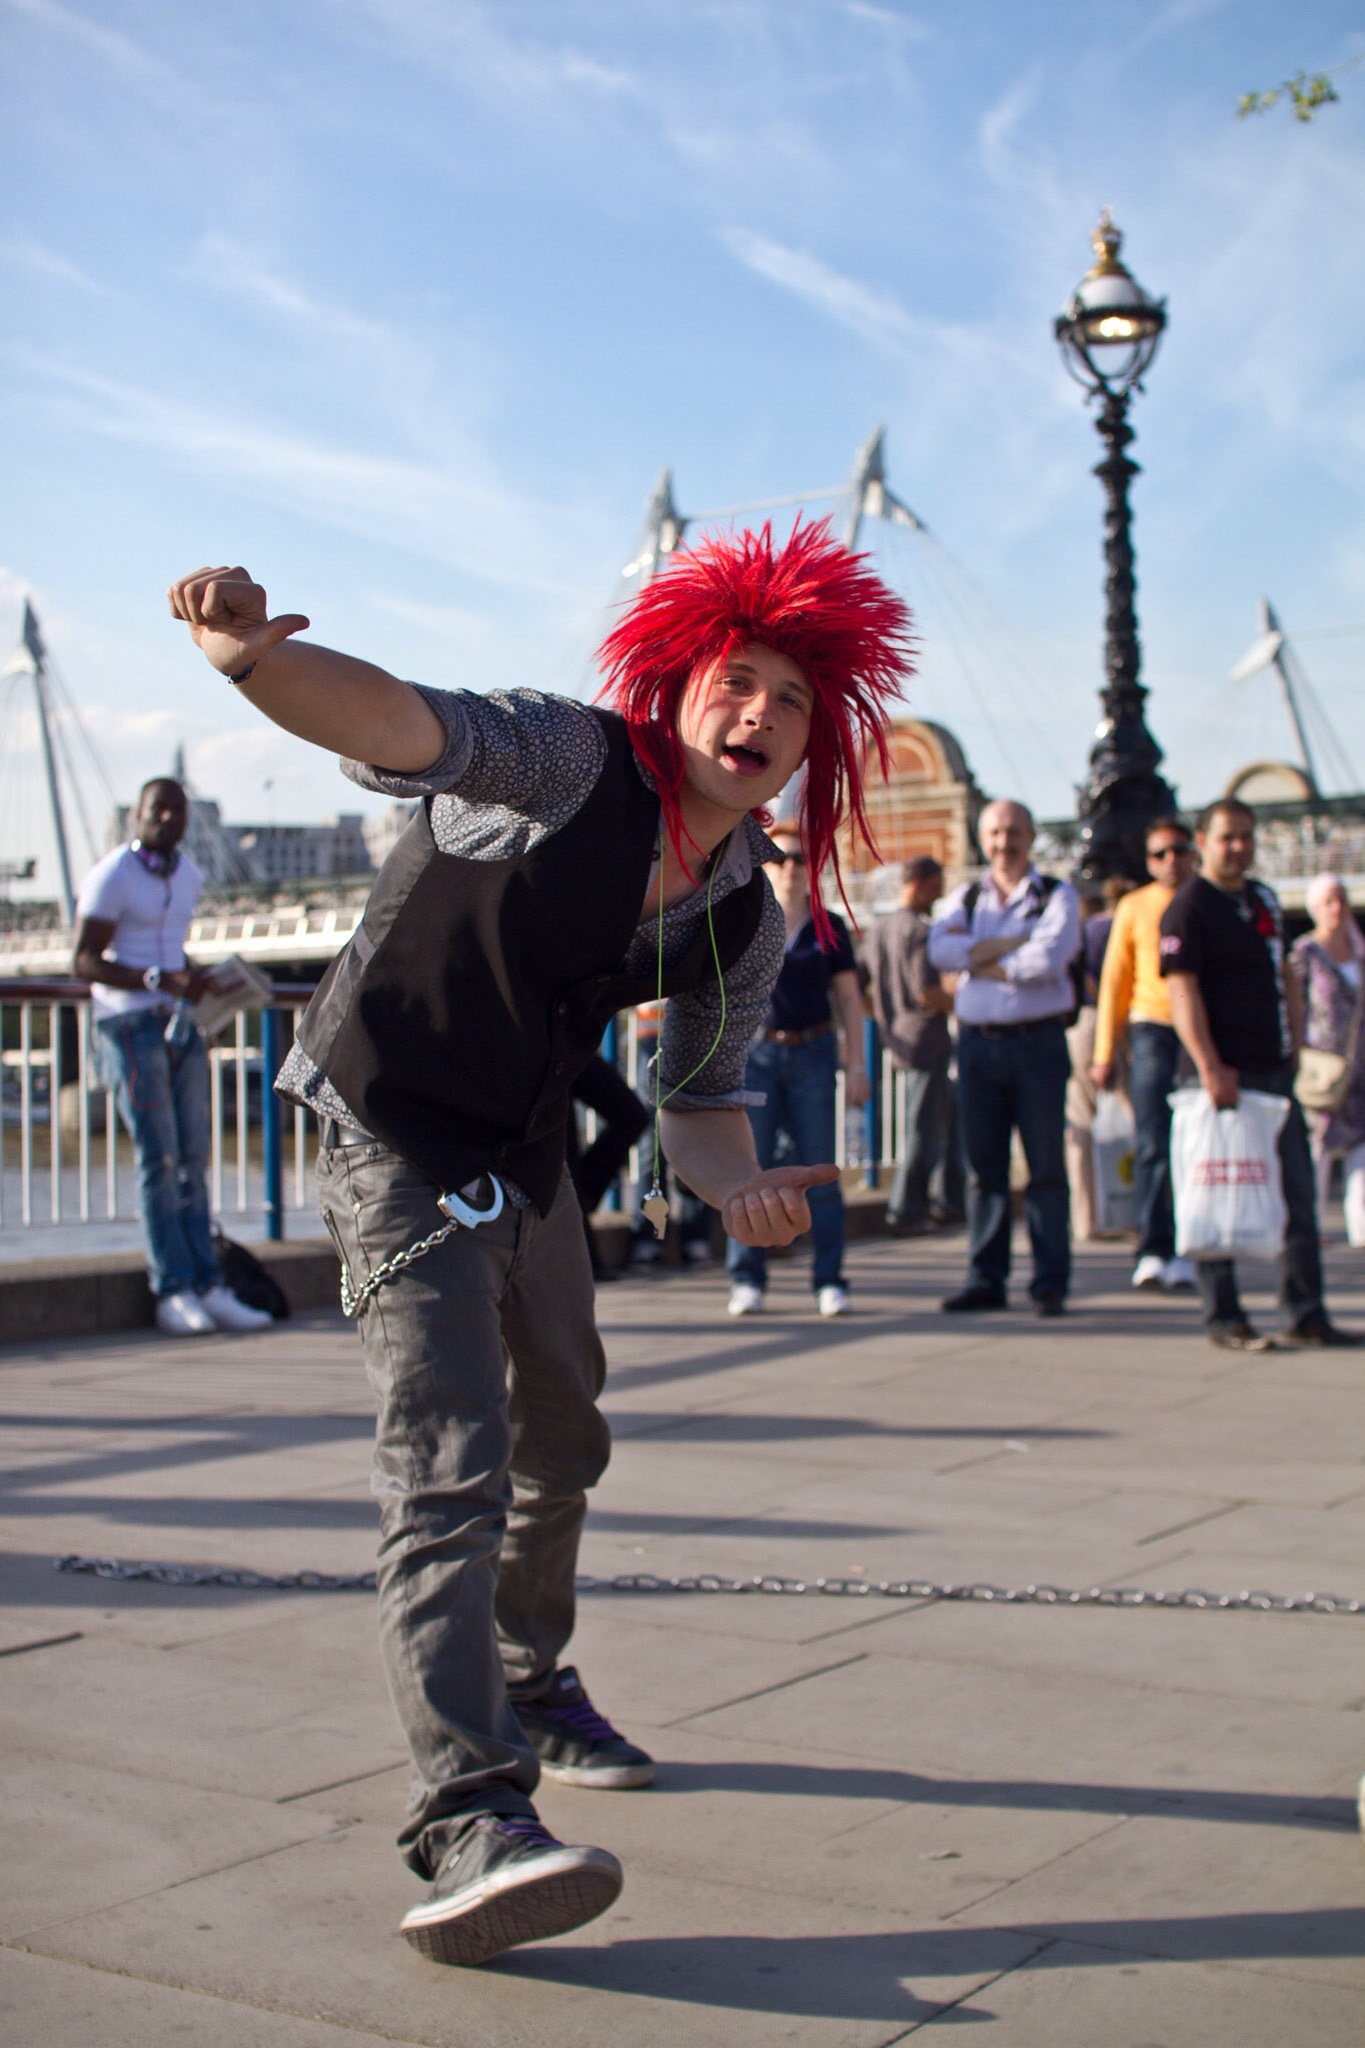 A street performer on the South Bank of the Thames in London, during my day of street photography with my friend Sharon